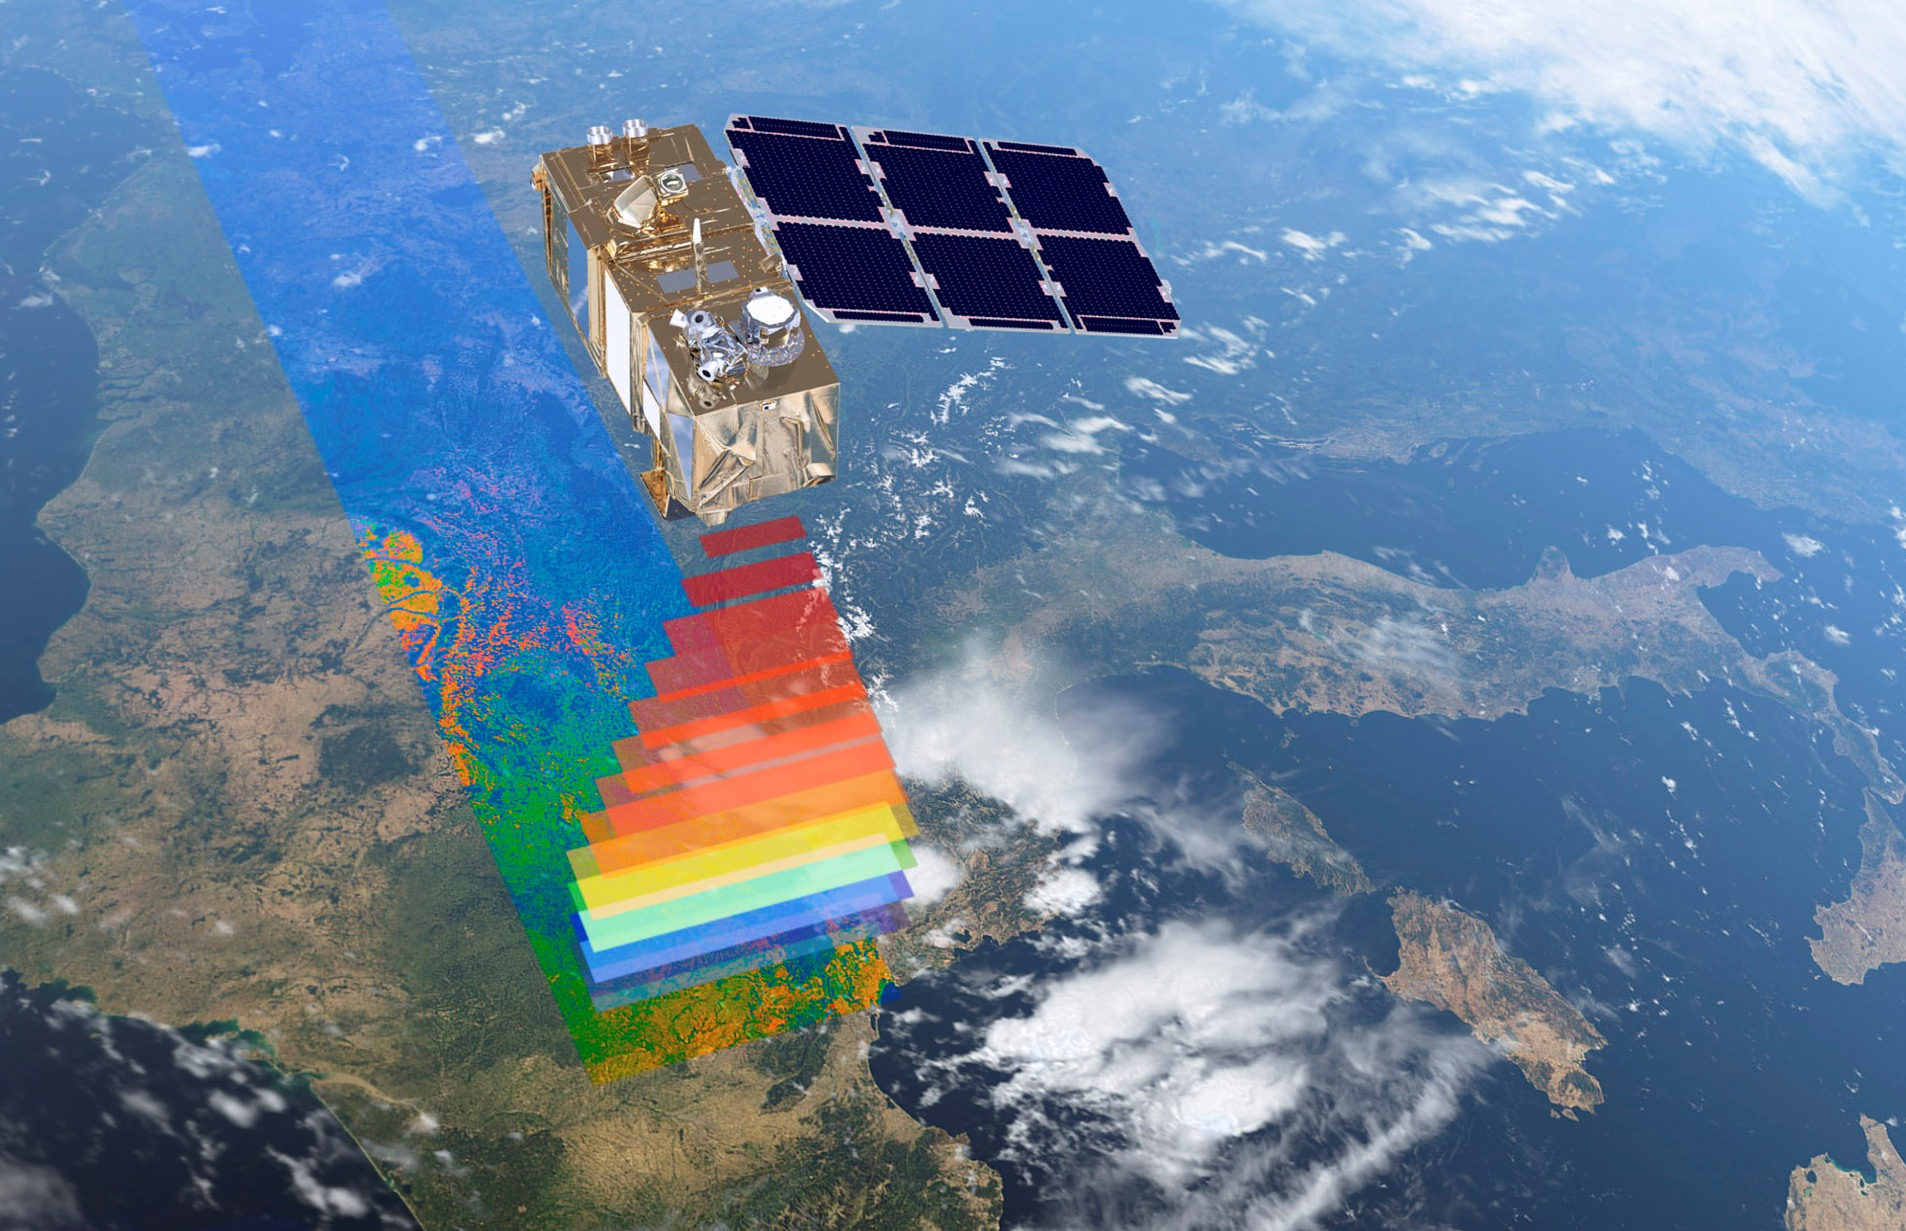 Satellites provide a global monitor